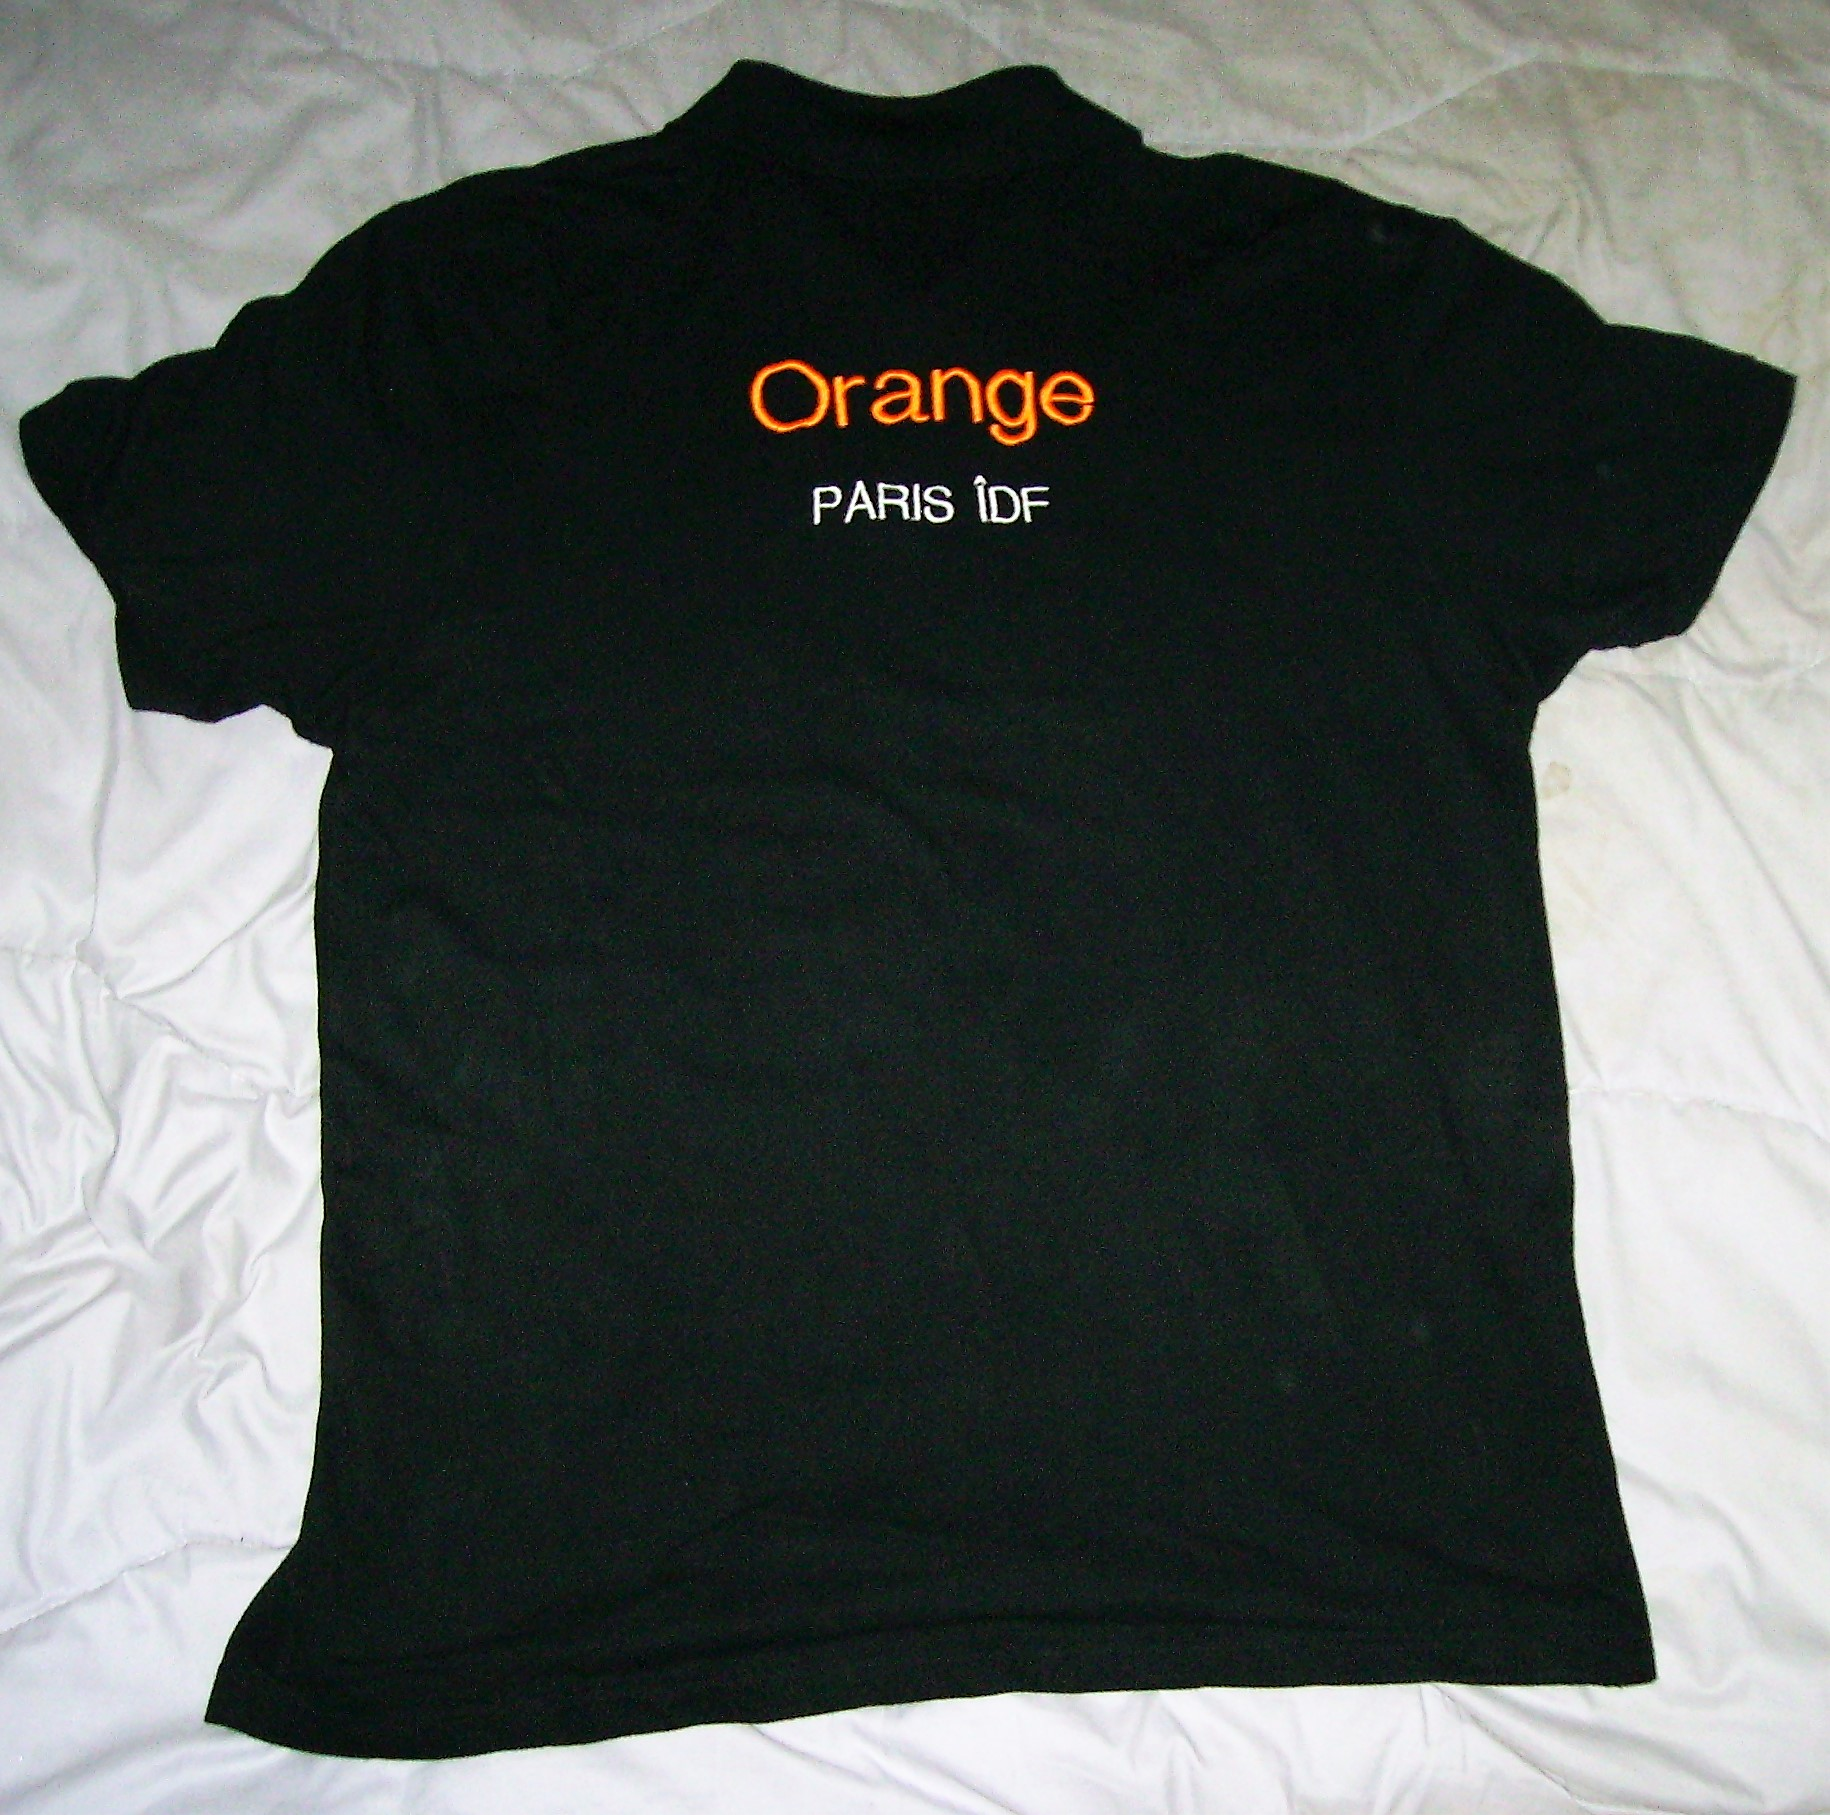 Maillot SE Orange dos.jpg